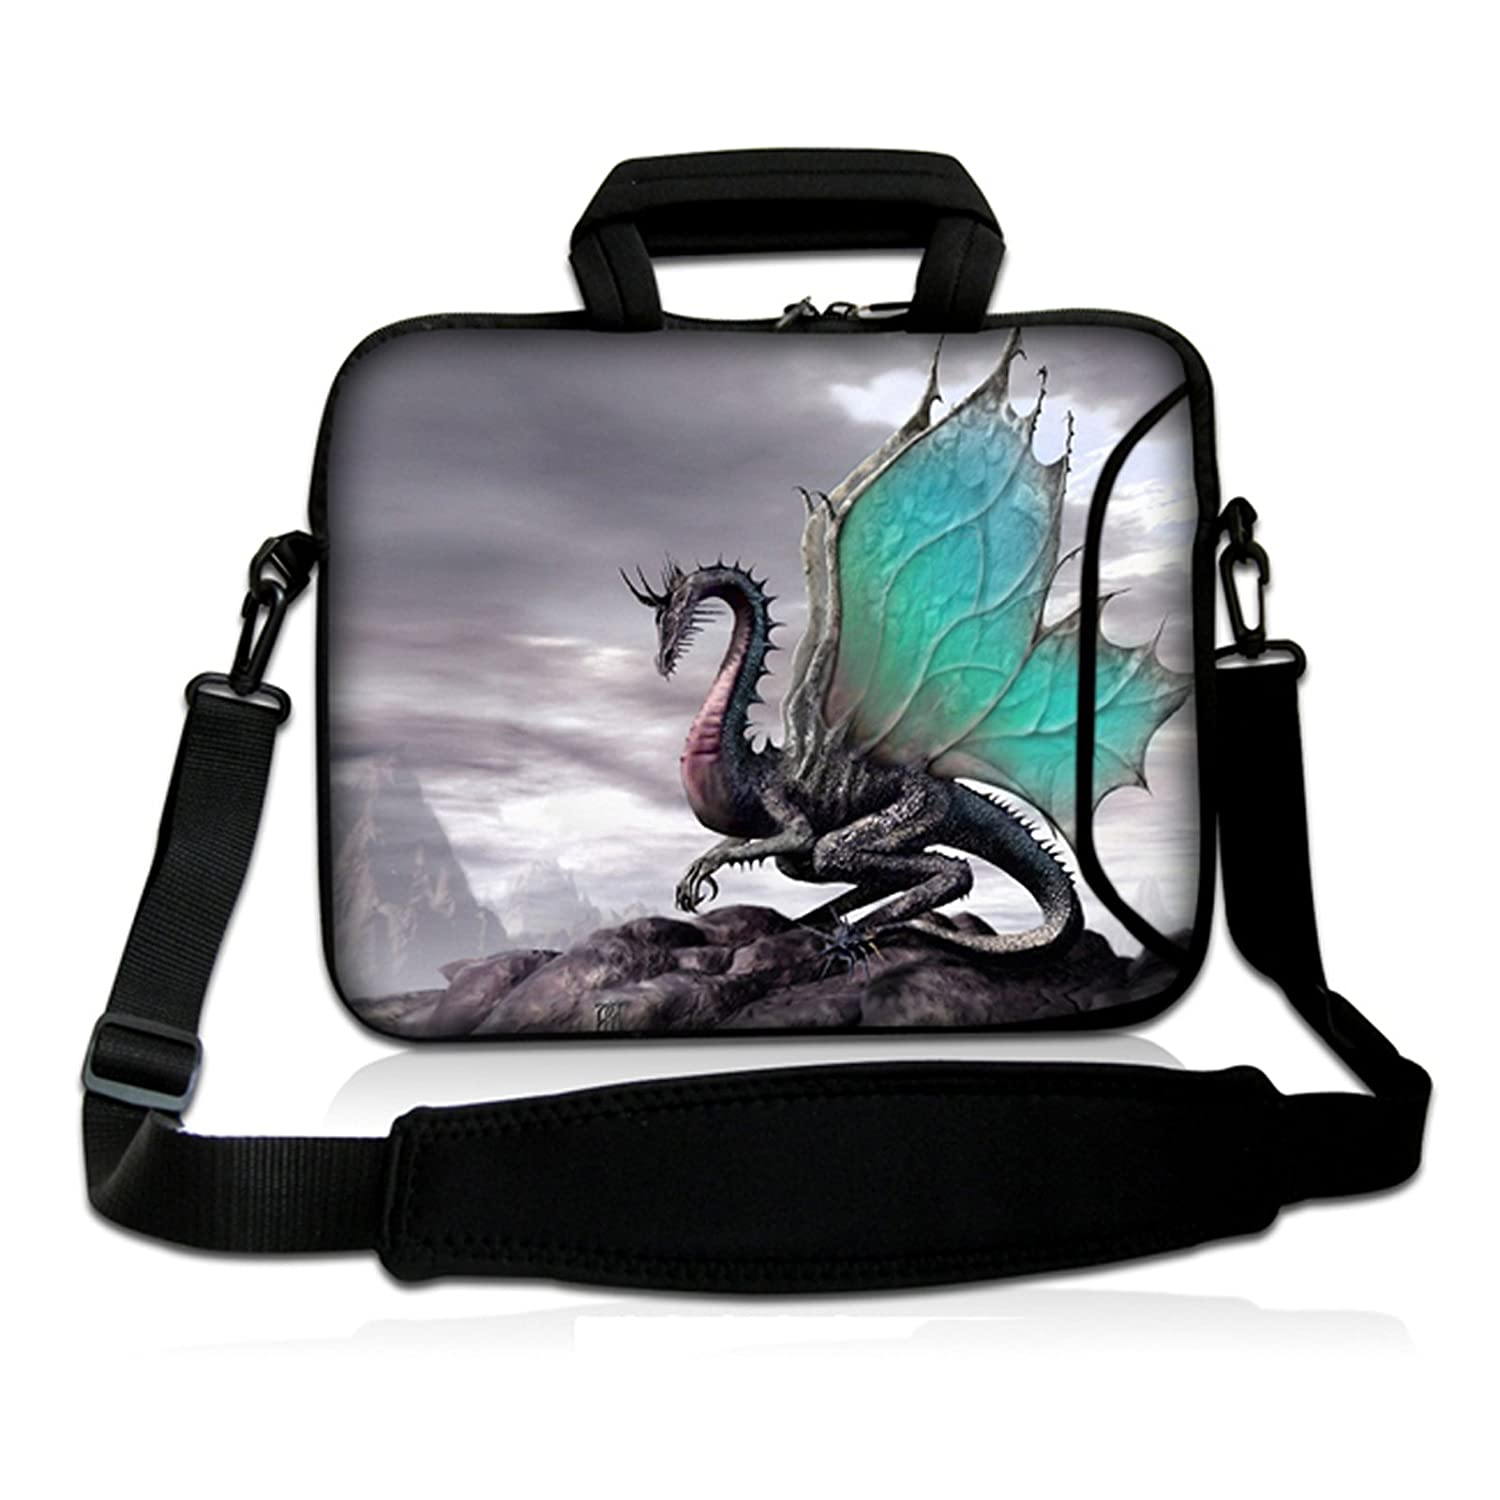 """ToLuLu®Pterosaur 9.7"""" 10"""" 10.2"""" inch Laptop Netbook Tablet Shoulder Case Carrying Sleeve bag For Apple iPad/Asus EeePC/Acer Aspire one/Dell inspiron mini/Samsung N145/Lenovo S205 S10/HP Touchpad Mini 210"""